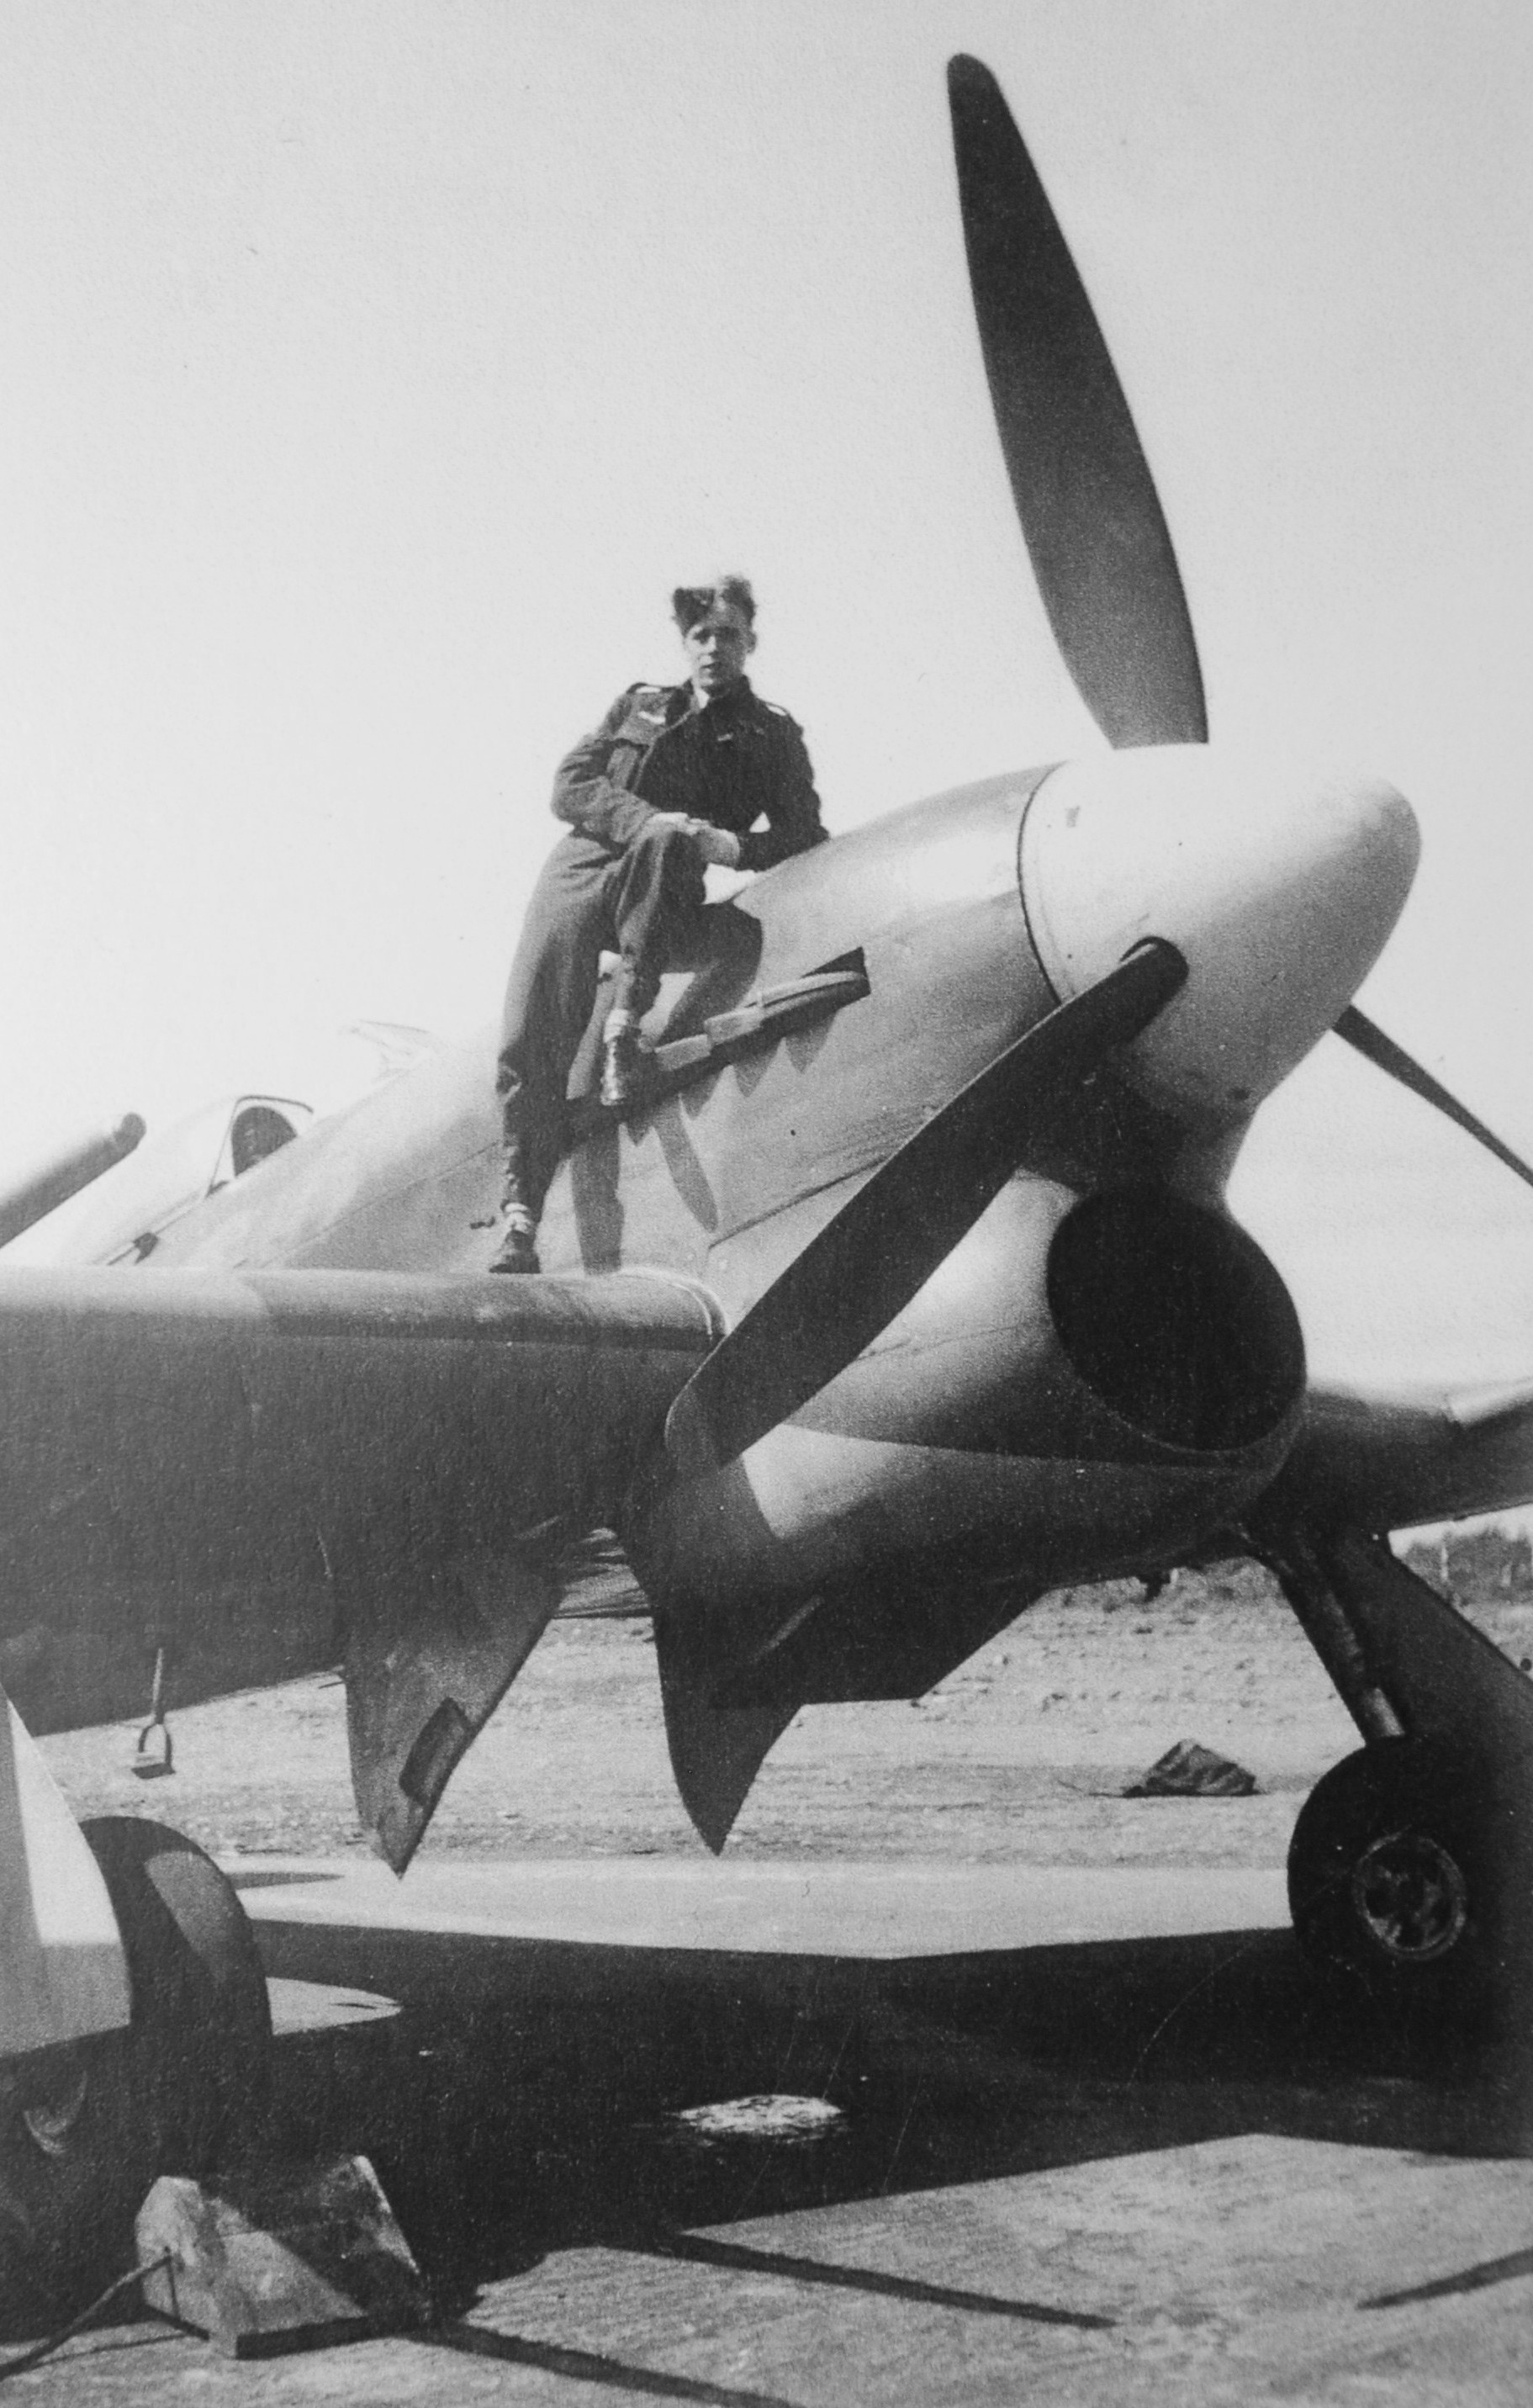 Flight Lieutenant John Colton perches on his Hawker Typhoon in Manston, England, in July 1944.